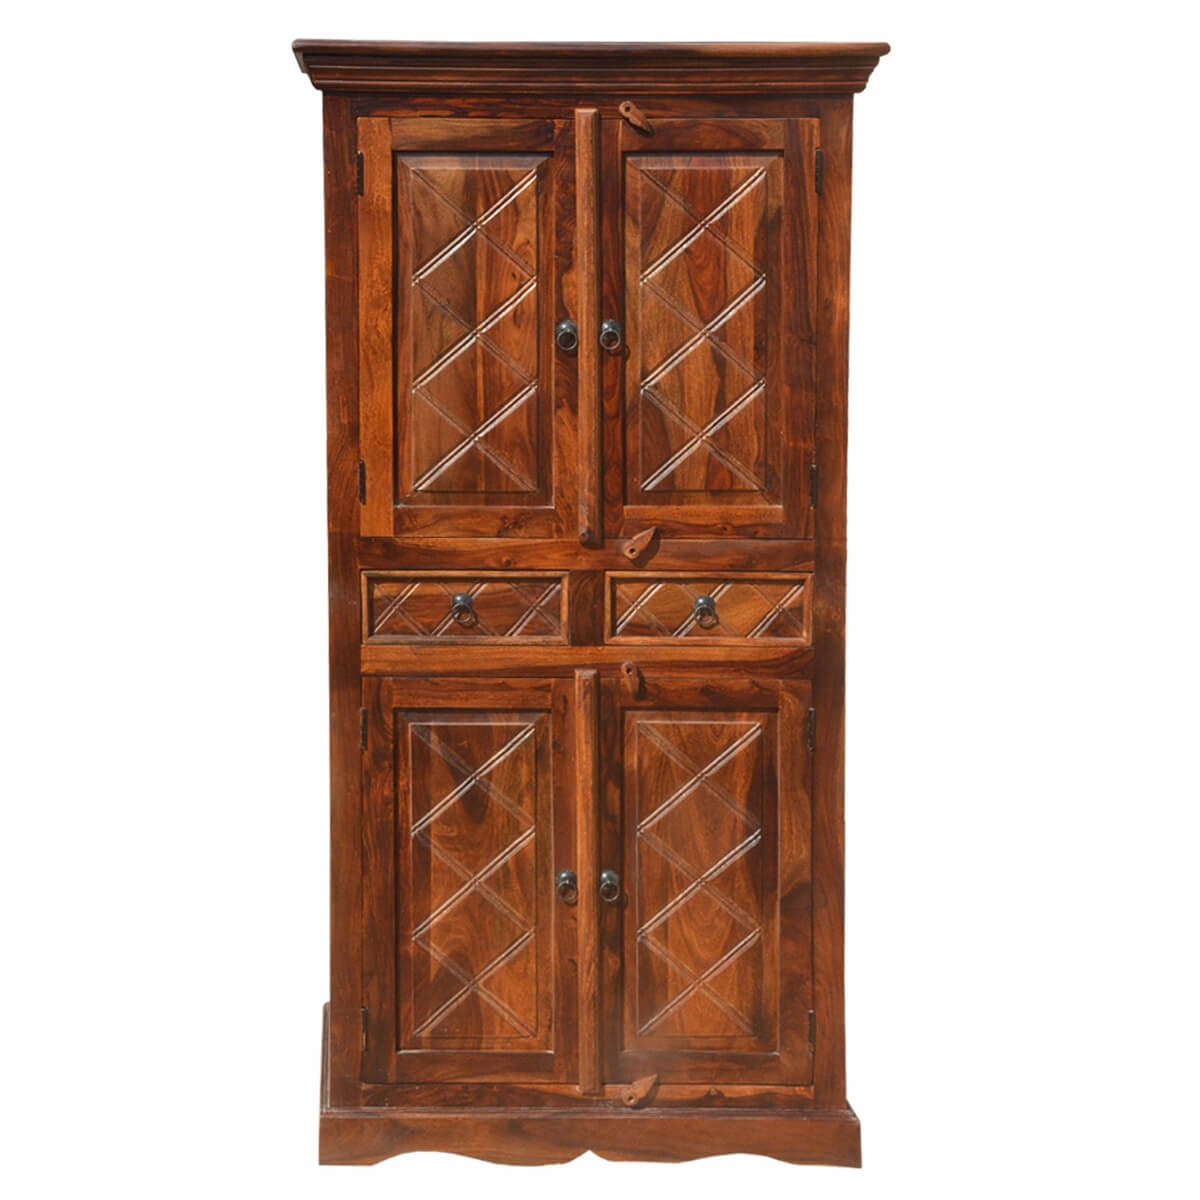 Rustic wood 2 storage drawers cupboard wardrobe armoire Wardrobe cabinet design woodworking plans